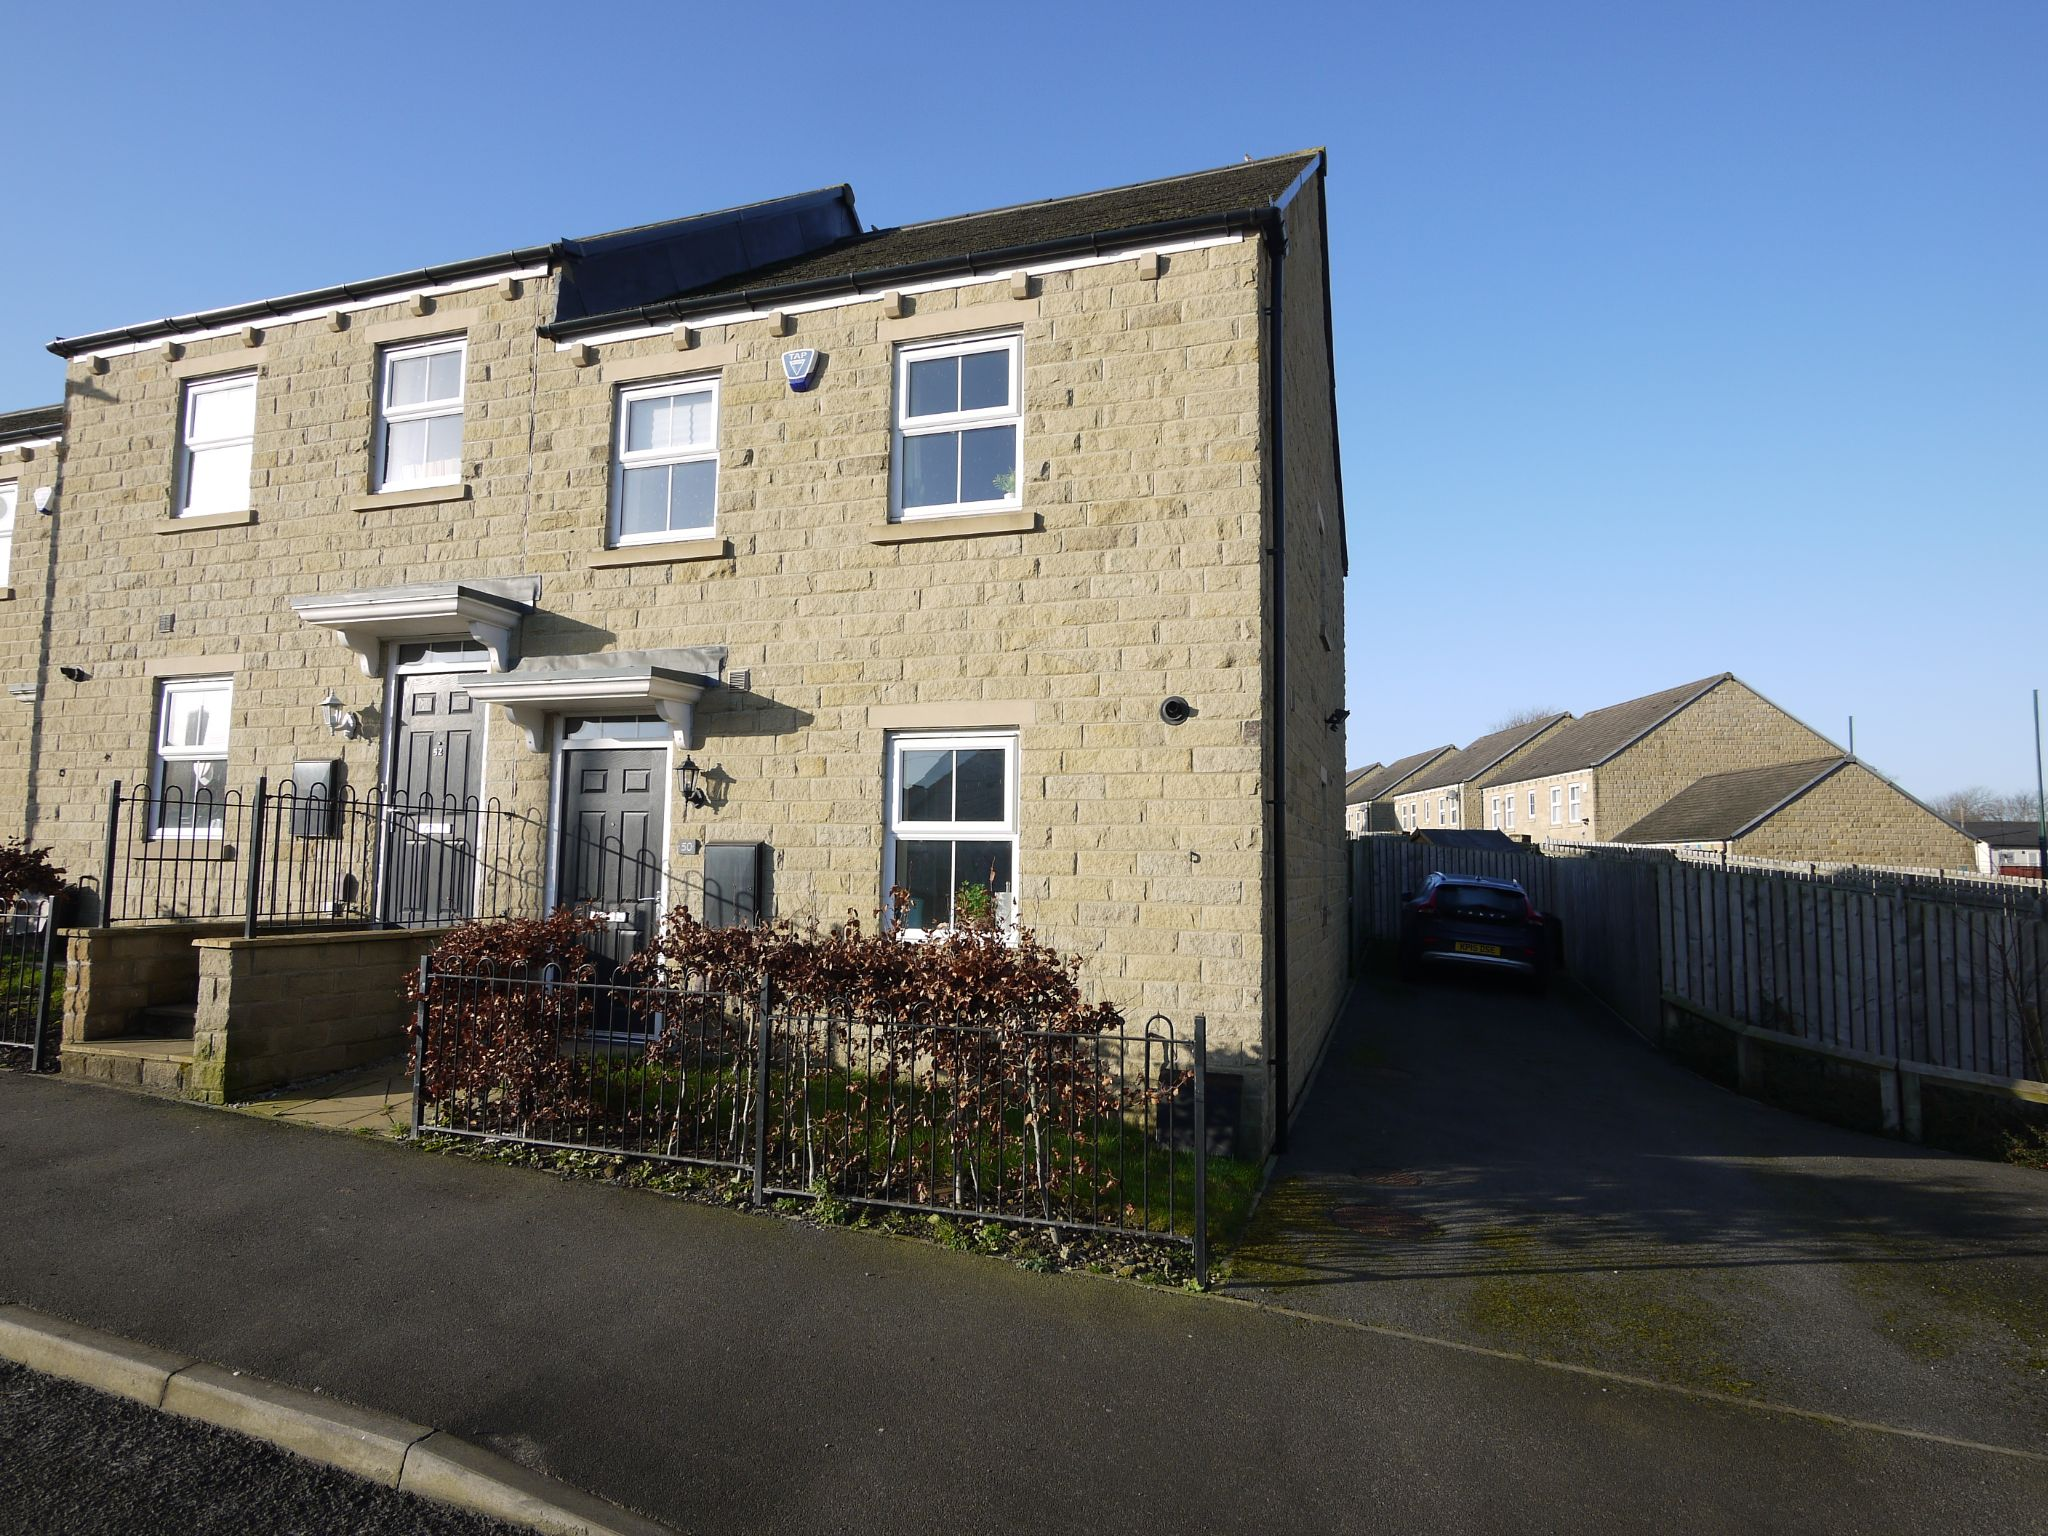 3 bedroom end terraced house SSTC in Cleckheaton - Main.